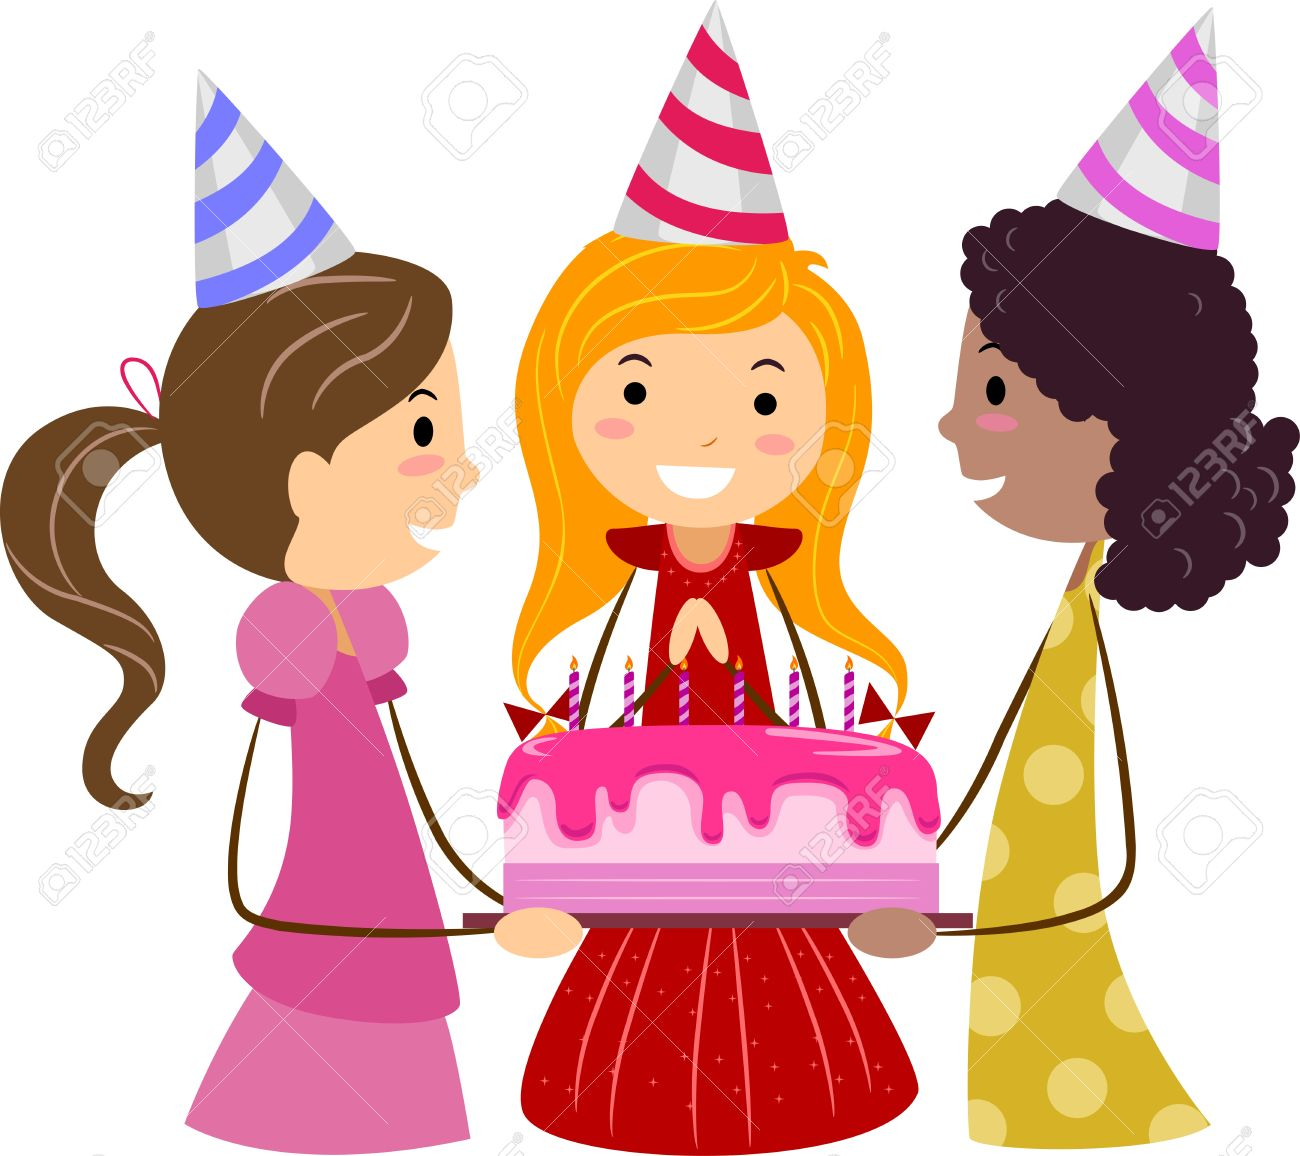 Girly birthday cake clipart clipart royalty free library Girl with birthday cake clipart - ClipartFox clipart royalty free library